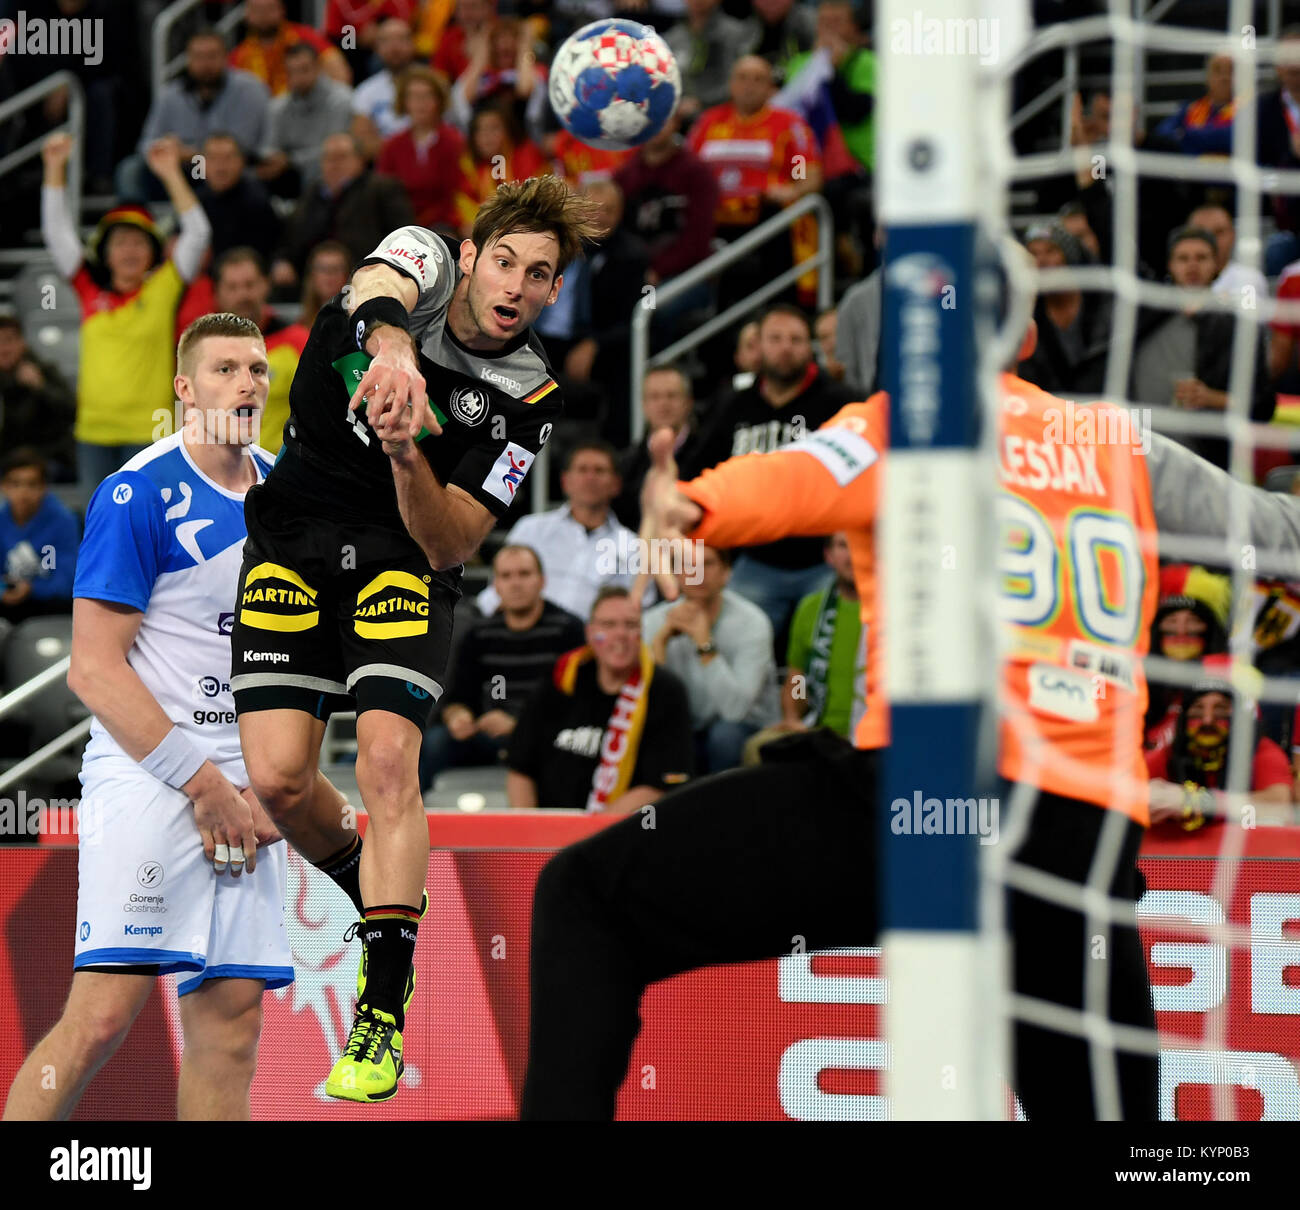 Germany's Uwe Gensheimer (L) throws at the goal of Slovenia's Urban Lesjak during the handball European - Stock Image